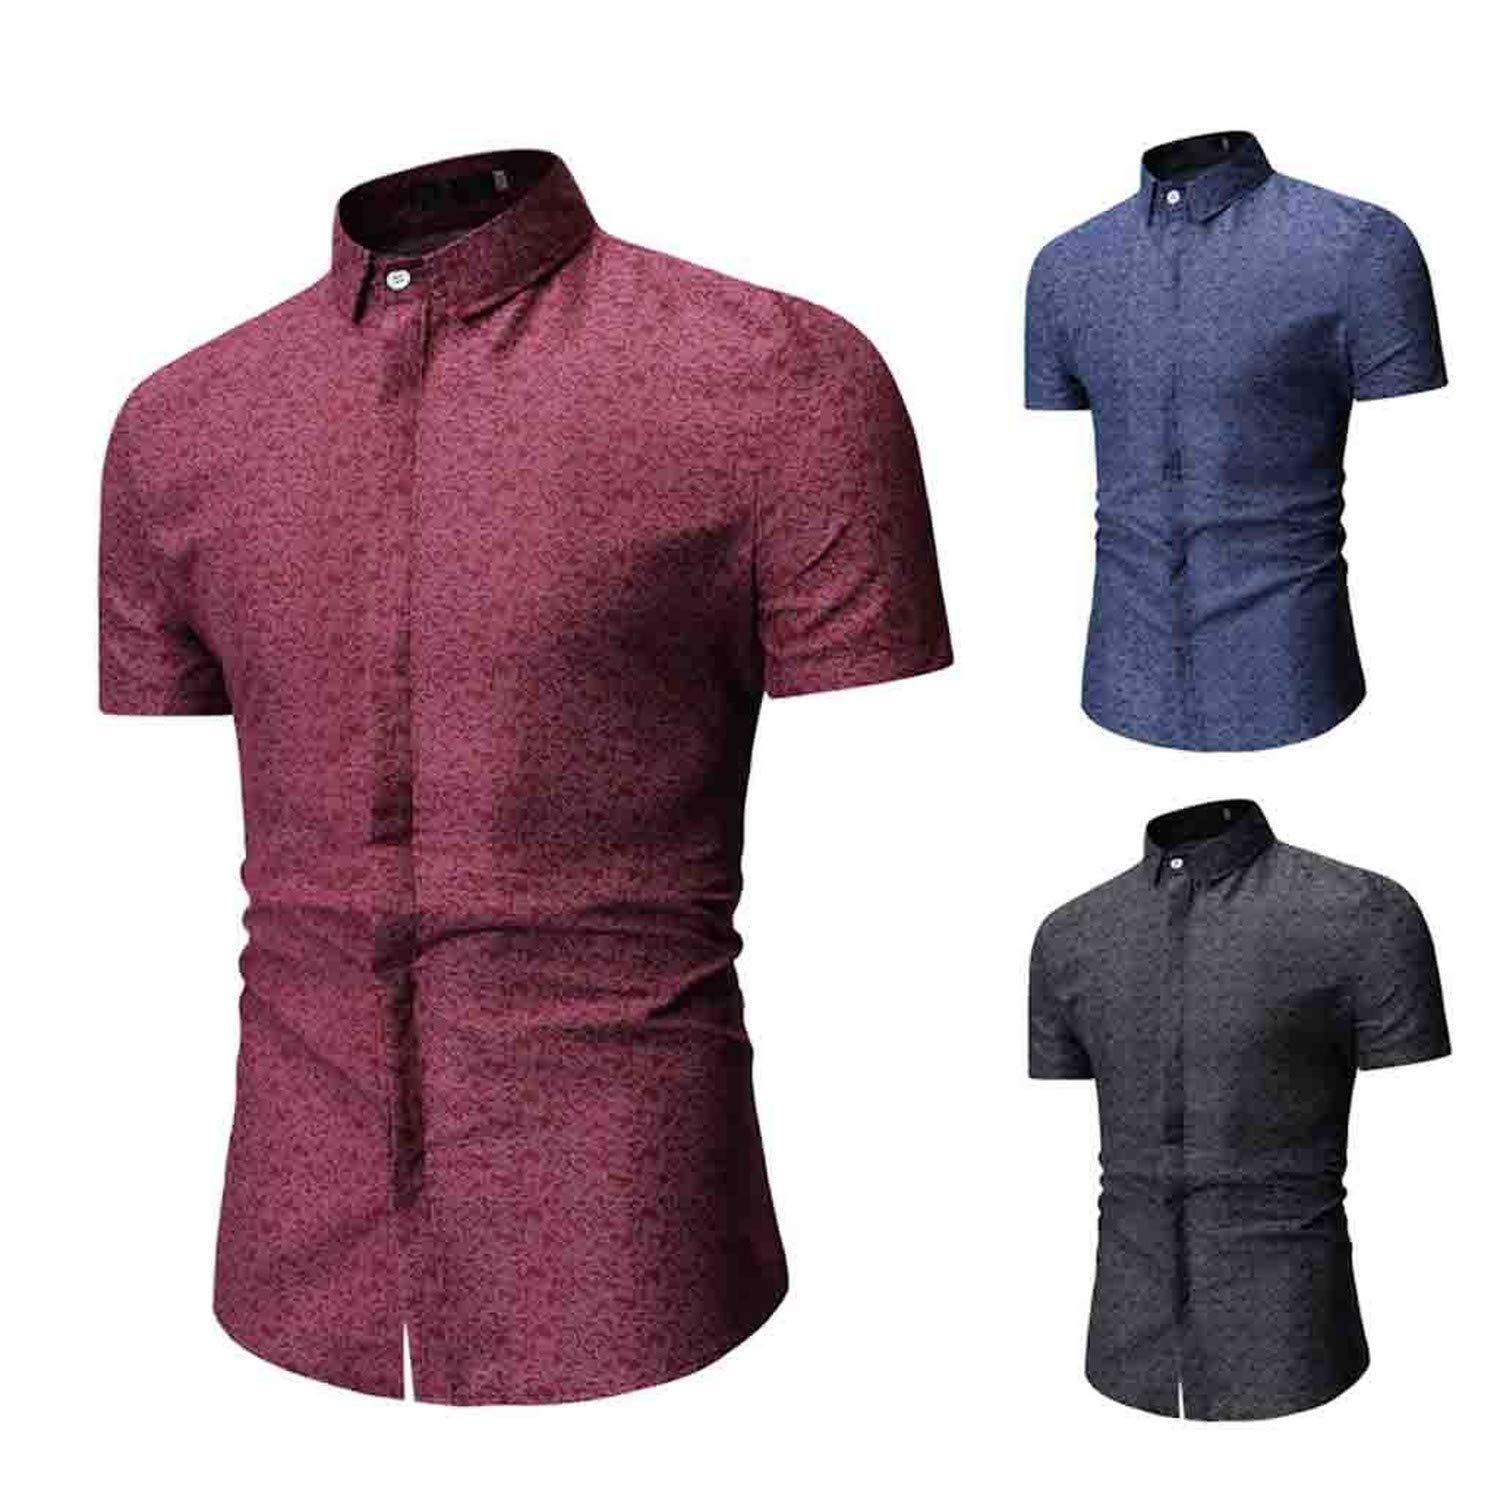 EspTmall Plus Size Men Shirt Summer 2019 Short Sleeve Turn-Down Collar Men Formal Shirts Vintage Korean Style Men Red L United States